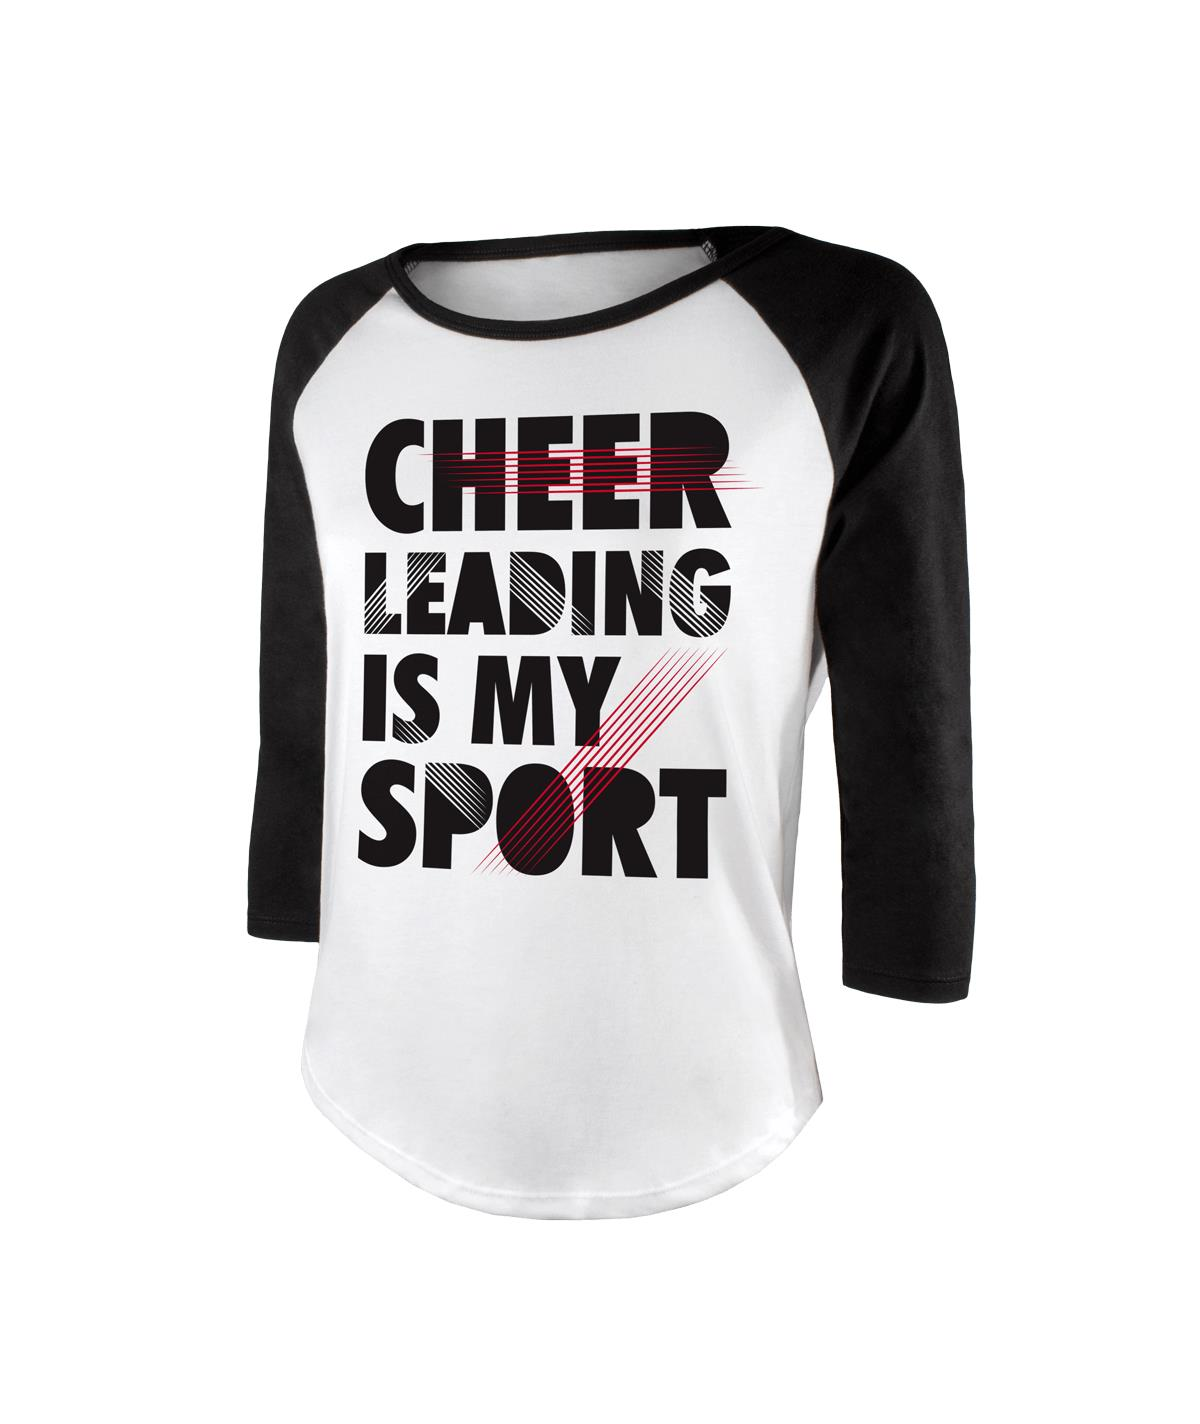 Cheerleading Is My Sport Loose Fit Raglan